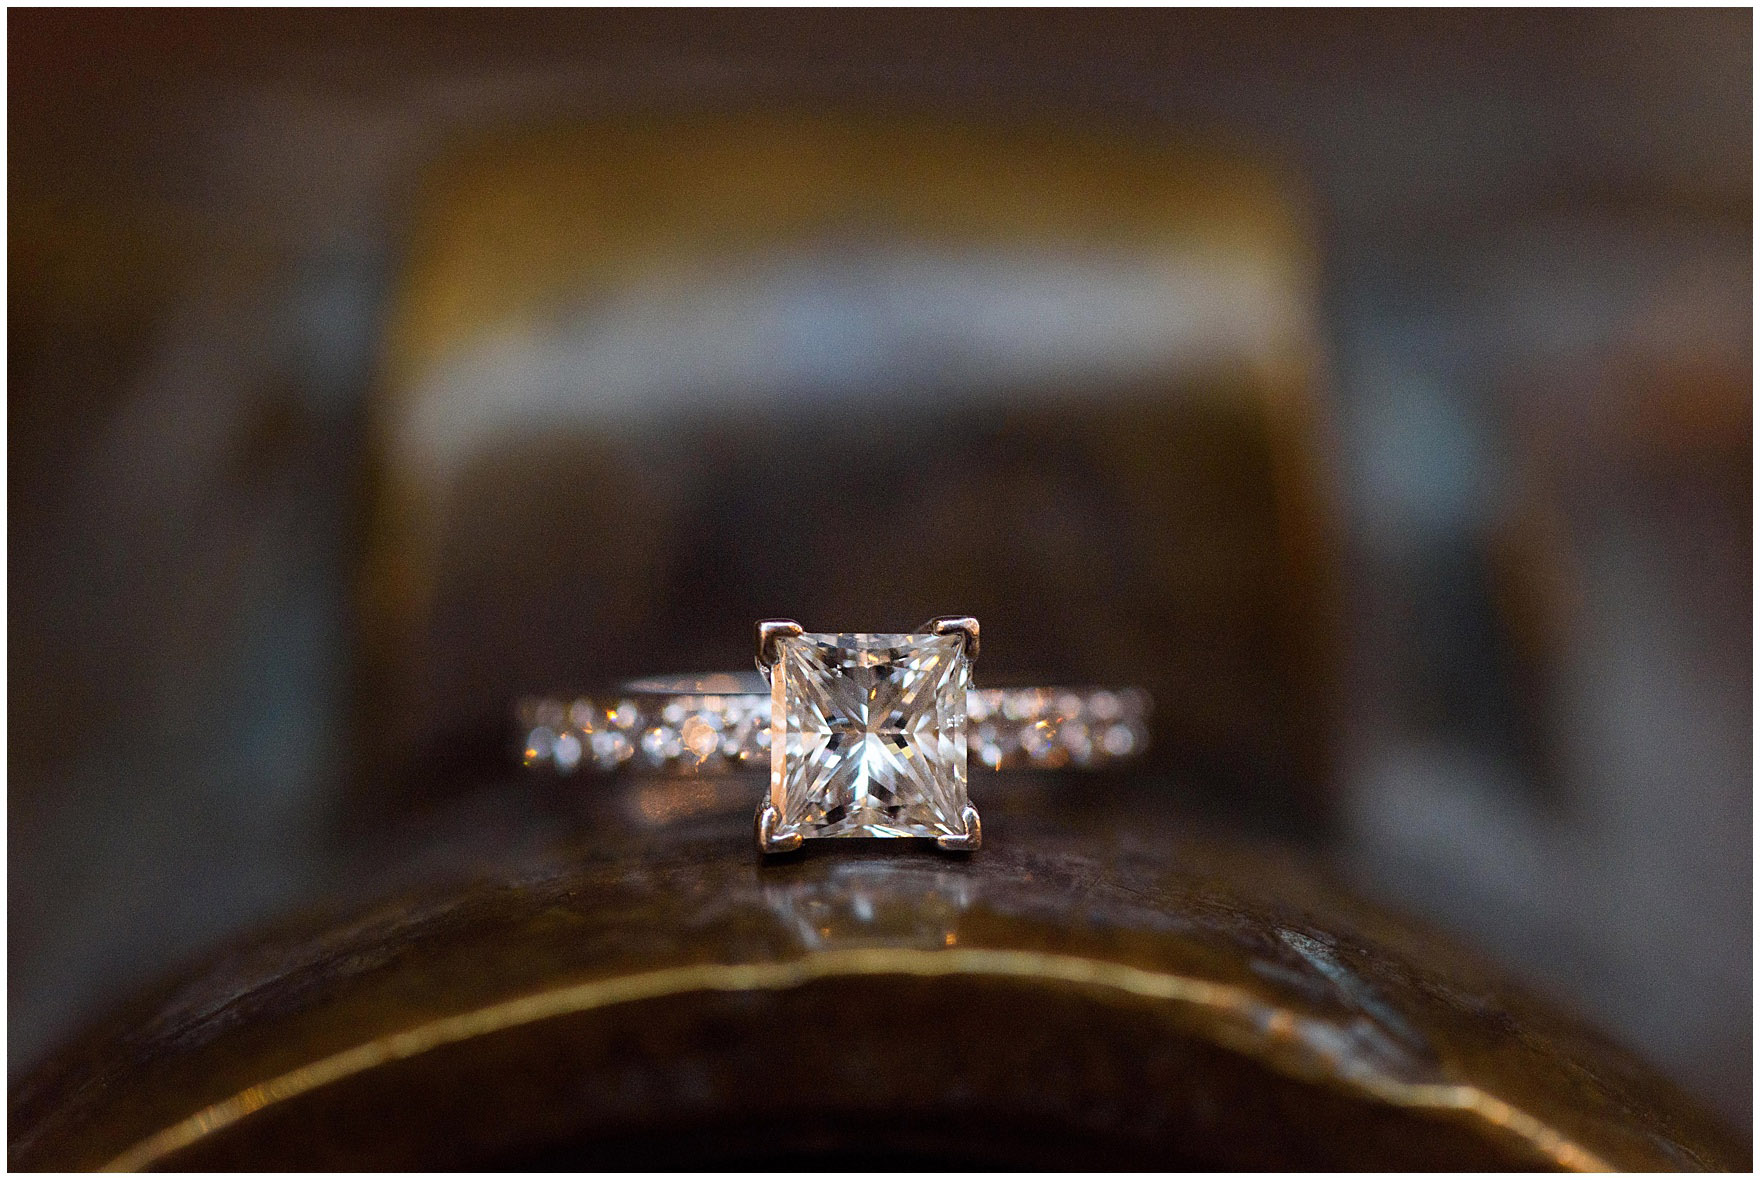 Close up photograph of a diamond engagement ring during a downtown Chicago city engagement photography session.